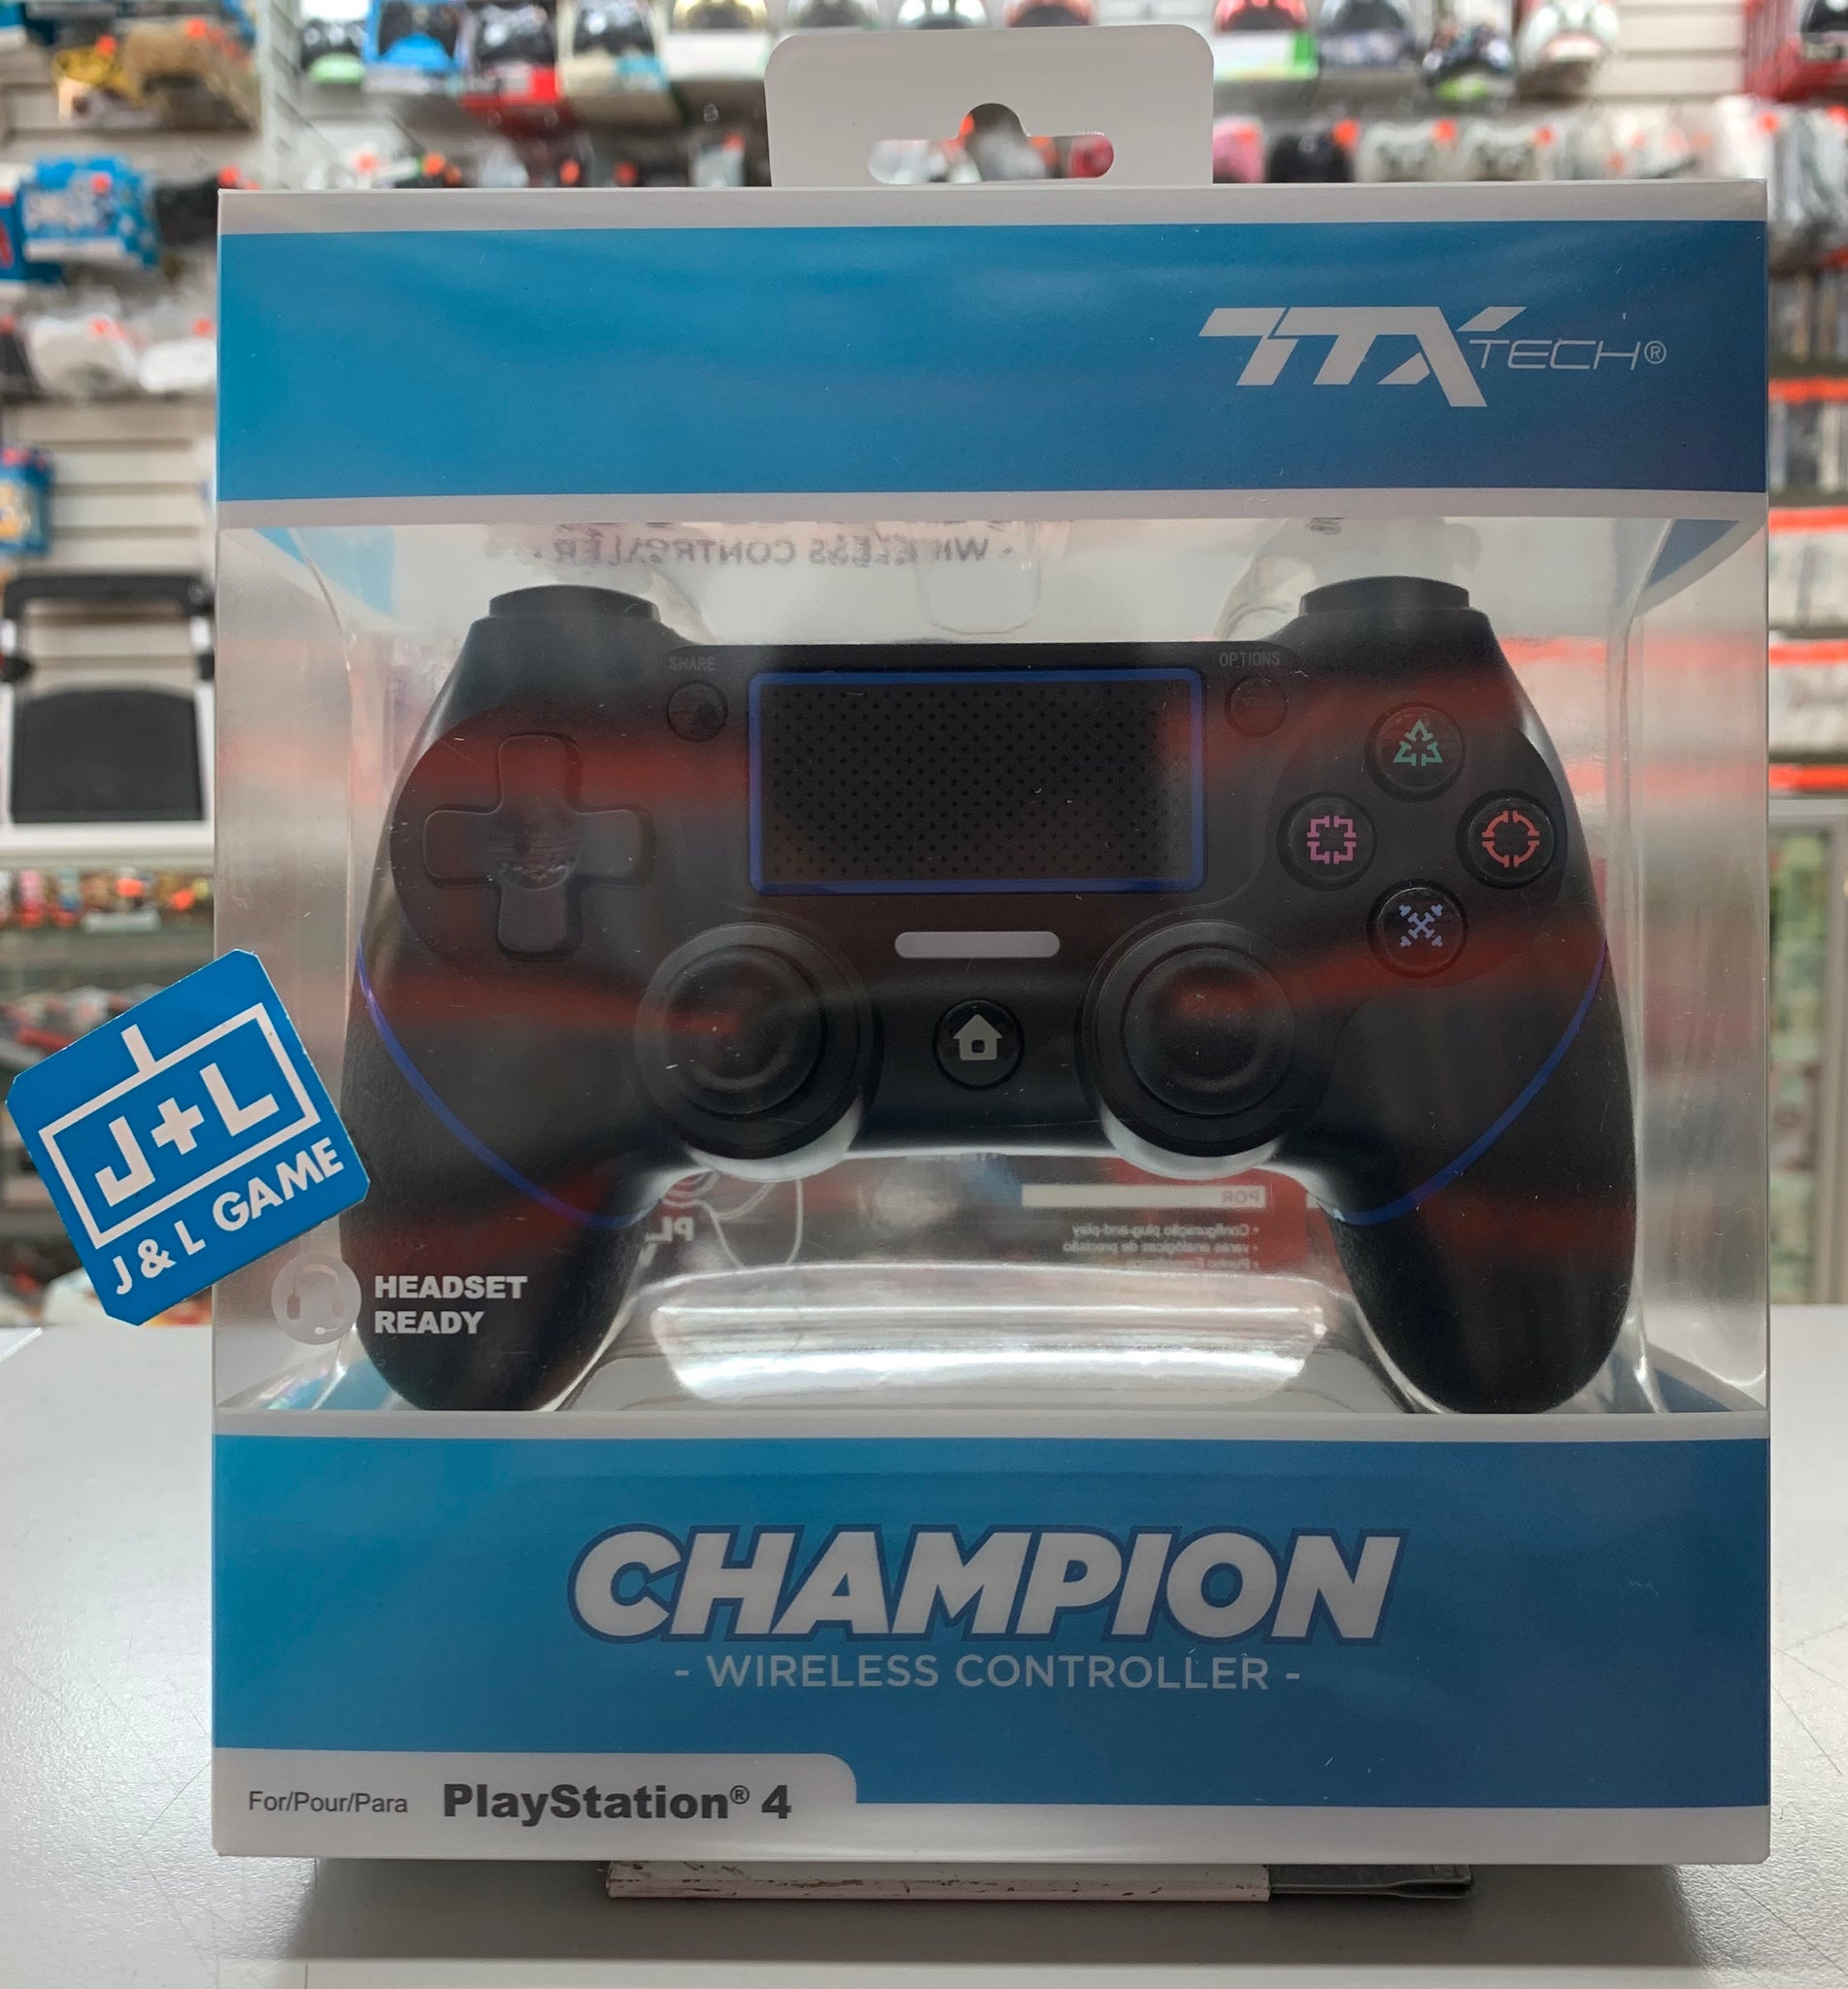 TTX Champion PS4 Wireless Controller for Playstation 4 - Black